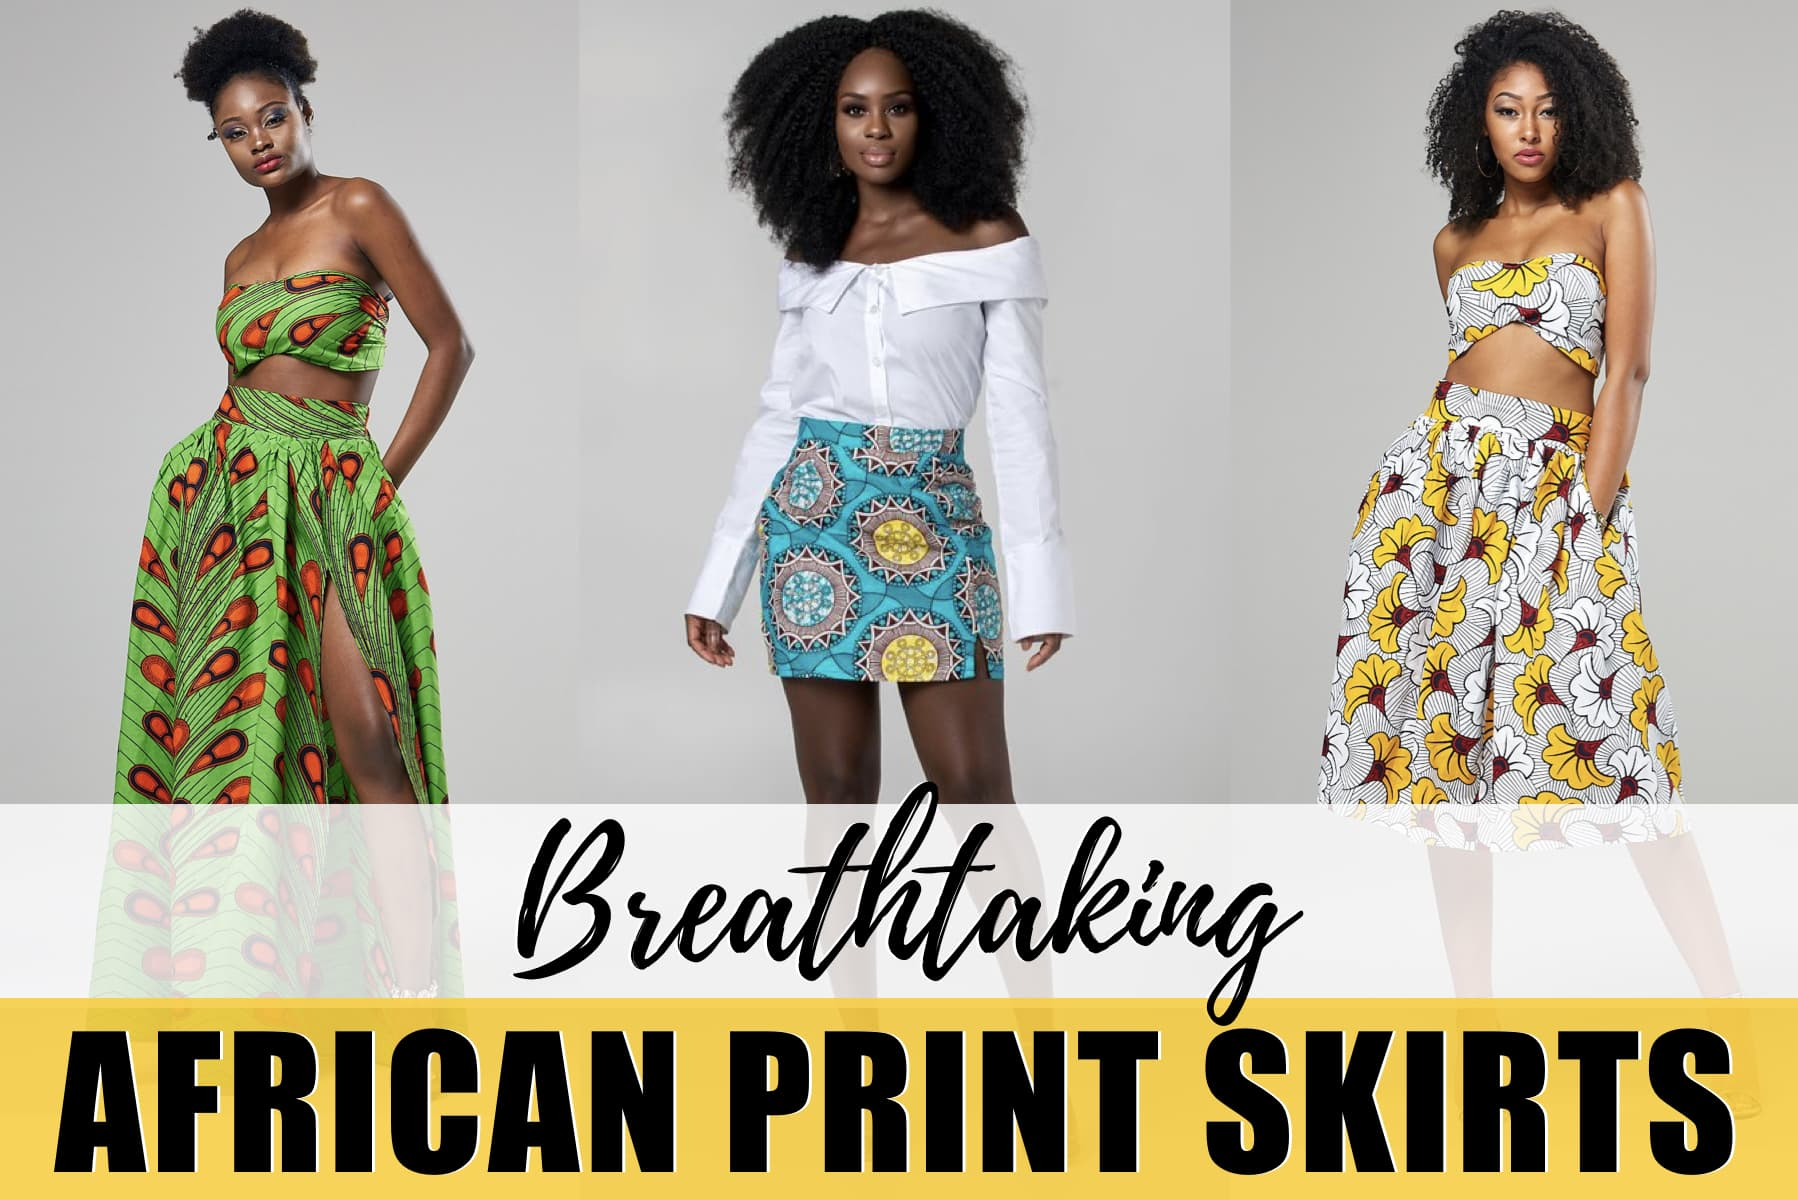 23 Hottest African Print Skirts in 2019 (& Where to Get them)